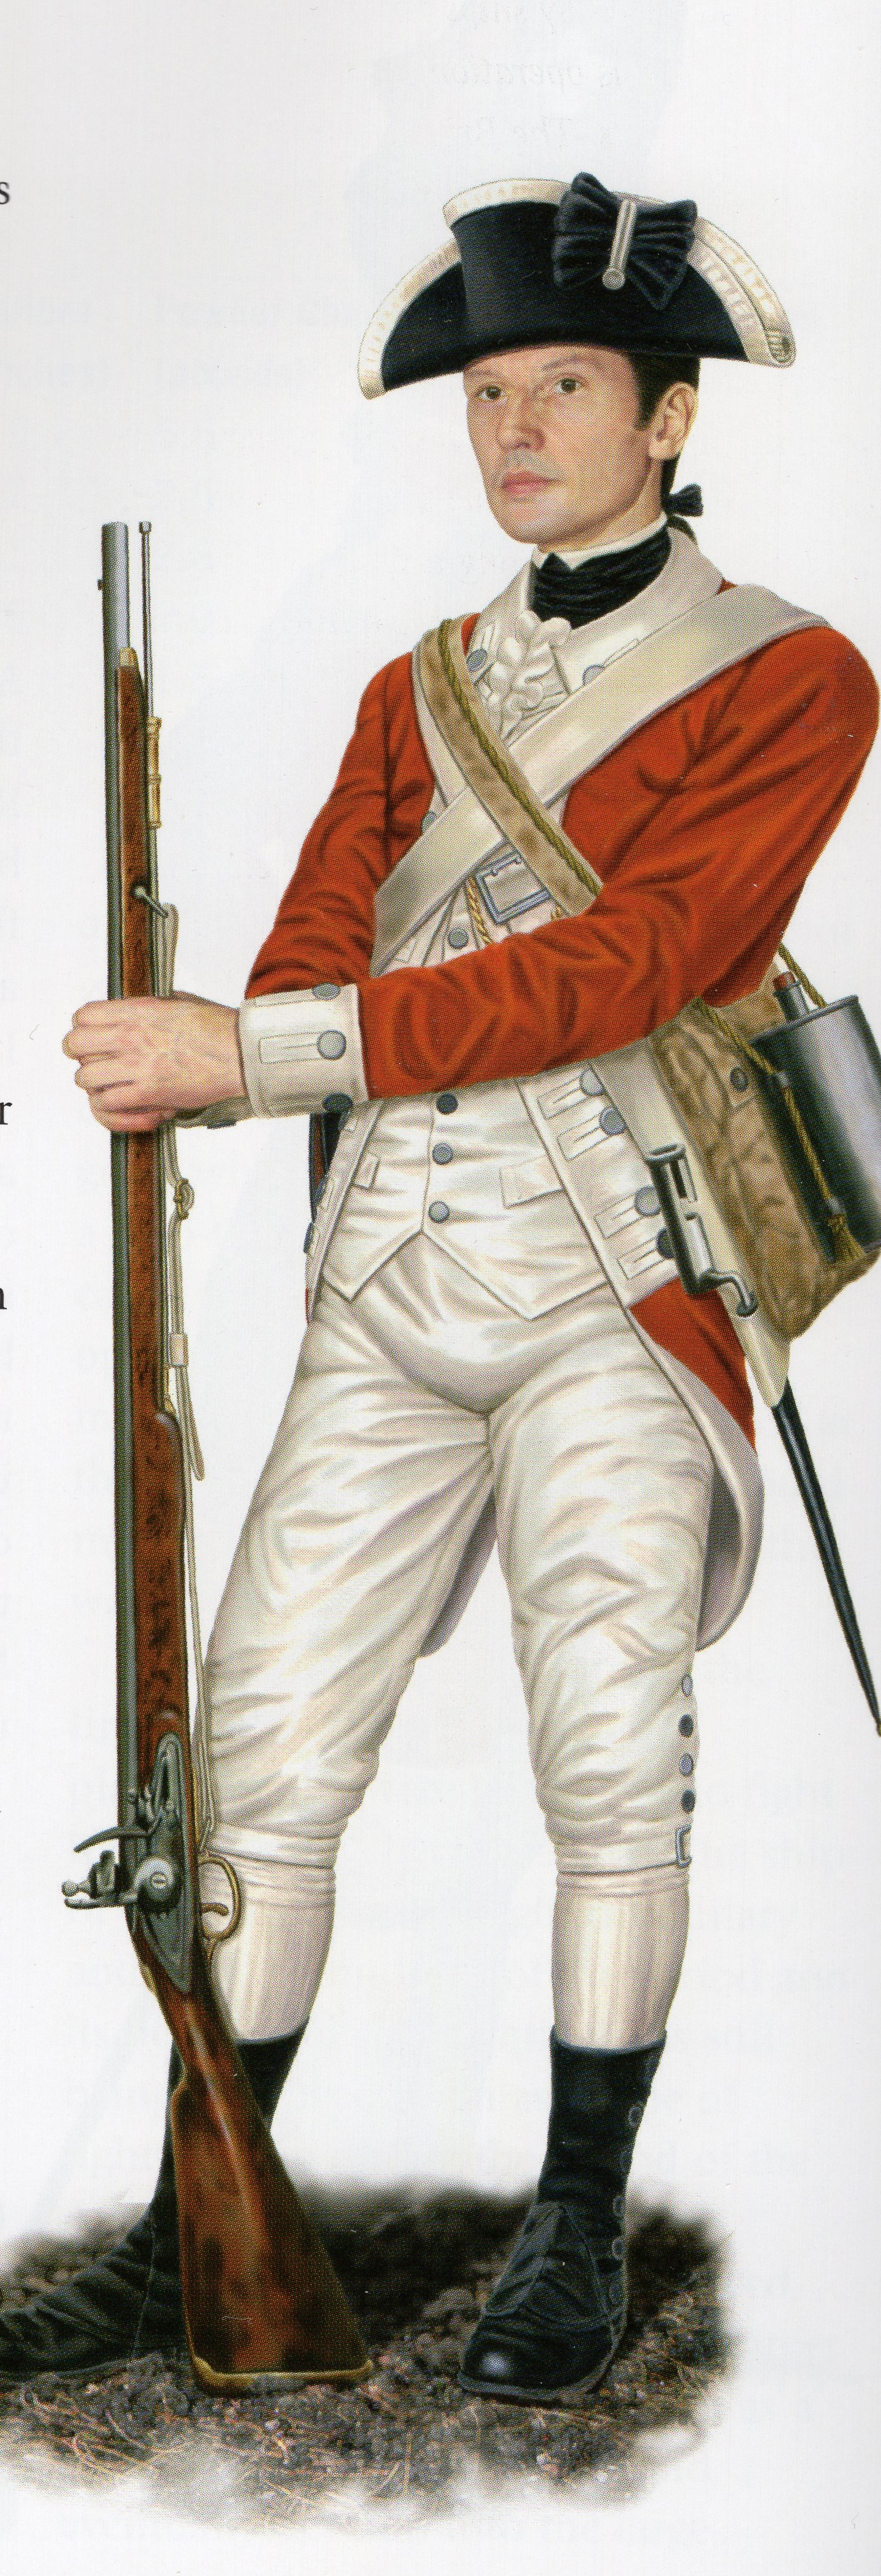 "Field uniform of a British Marine of the Revolutionary War. Dunmore's landing parties during the burning of Norfolk would have looked much like this.  From ""The Illustrated Encyclopedia of Uniforms from 1775-1784: The American Revolutionary War."""